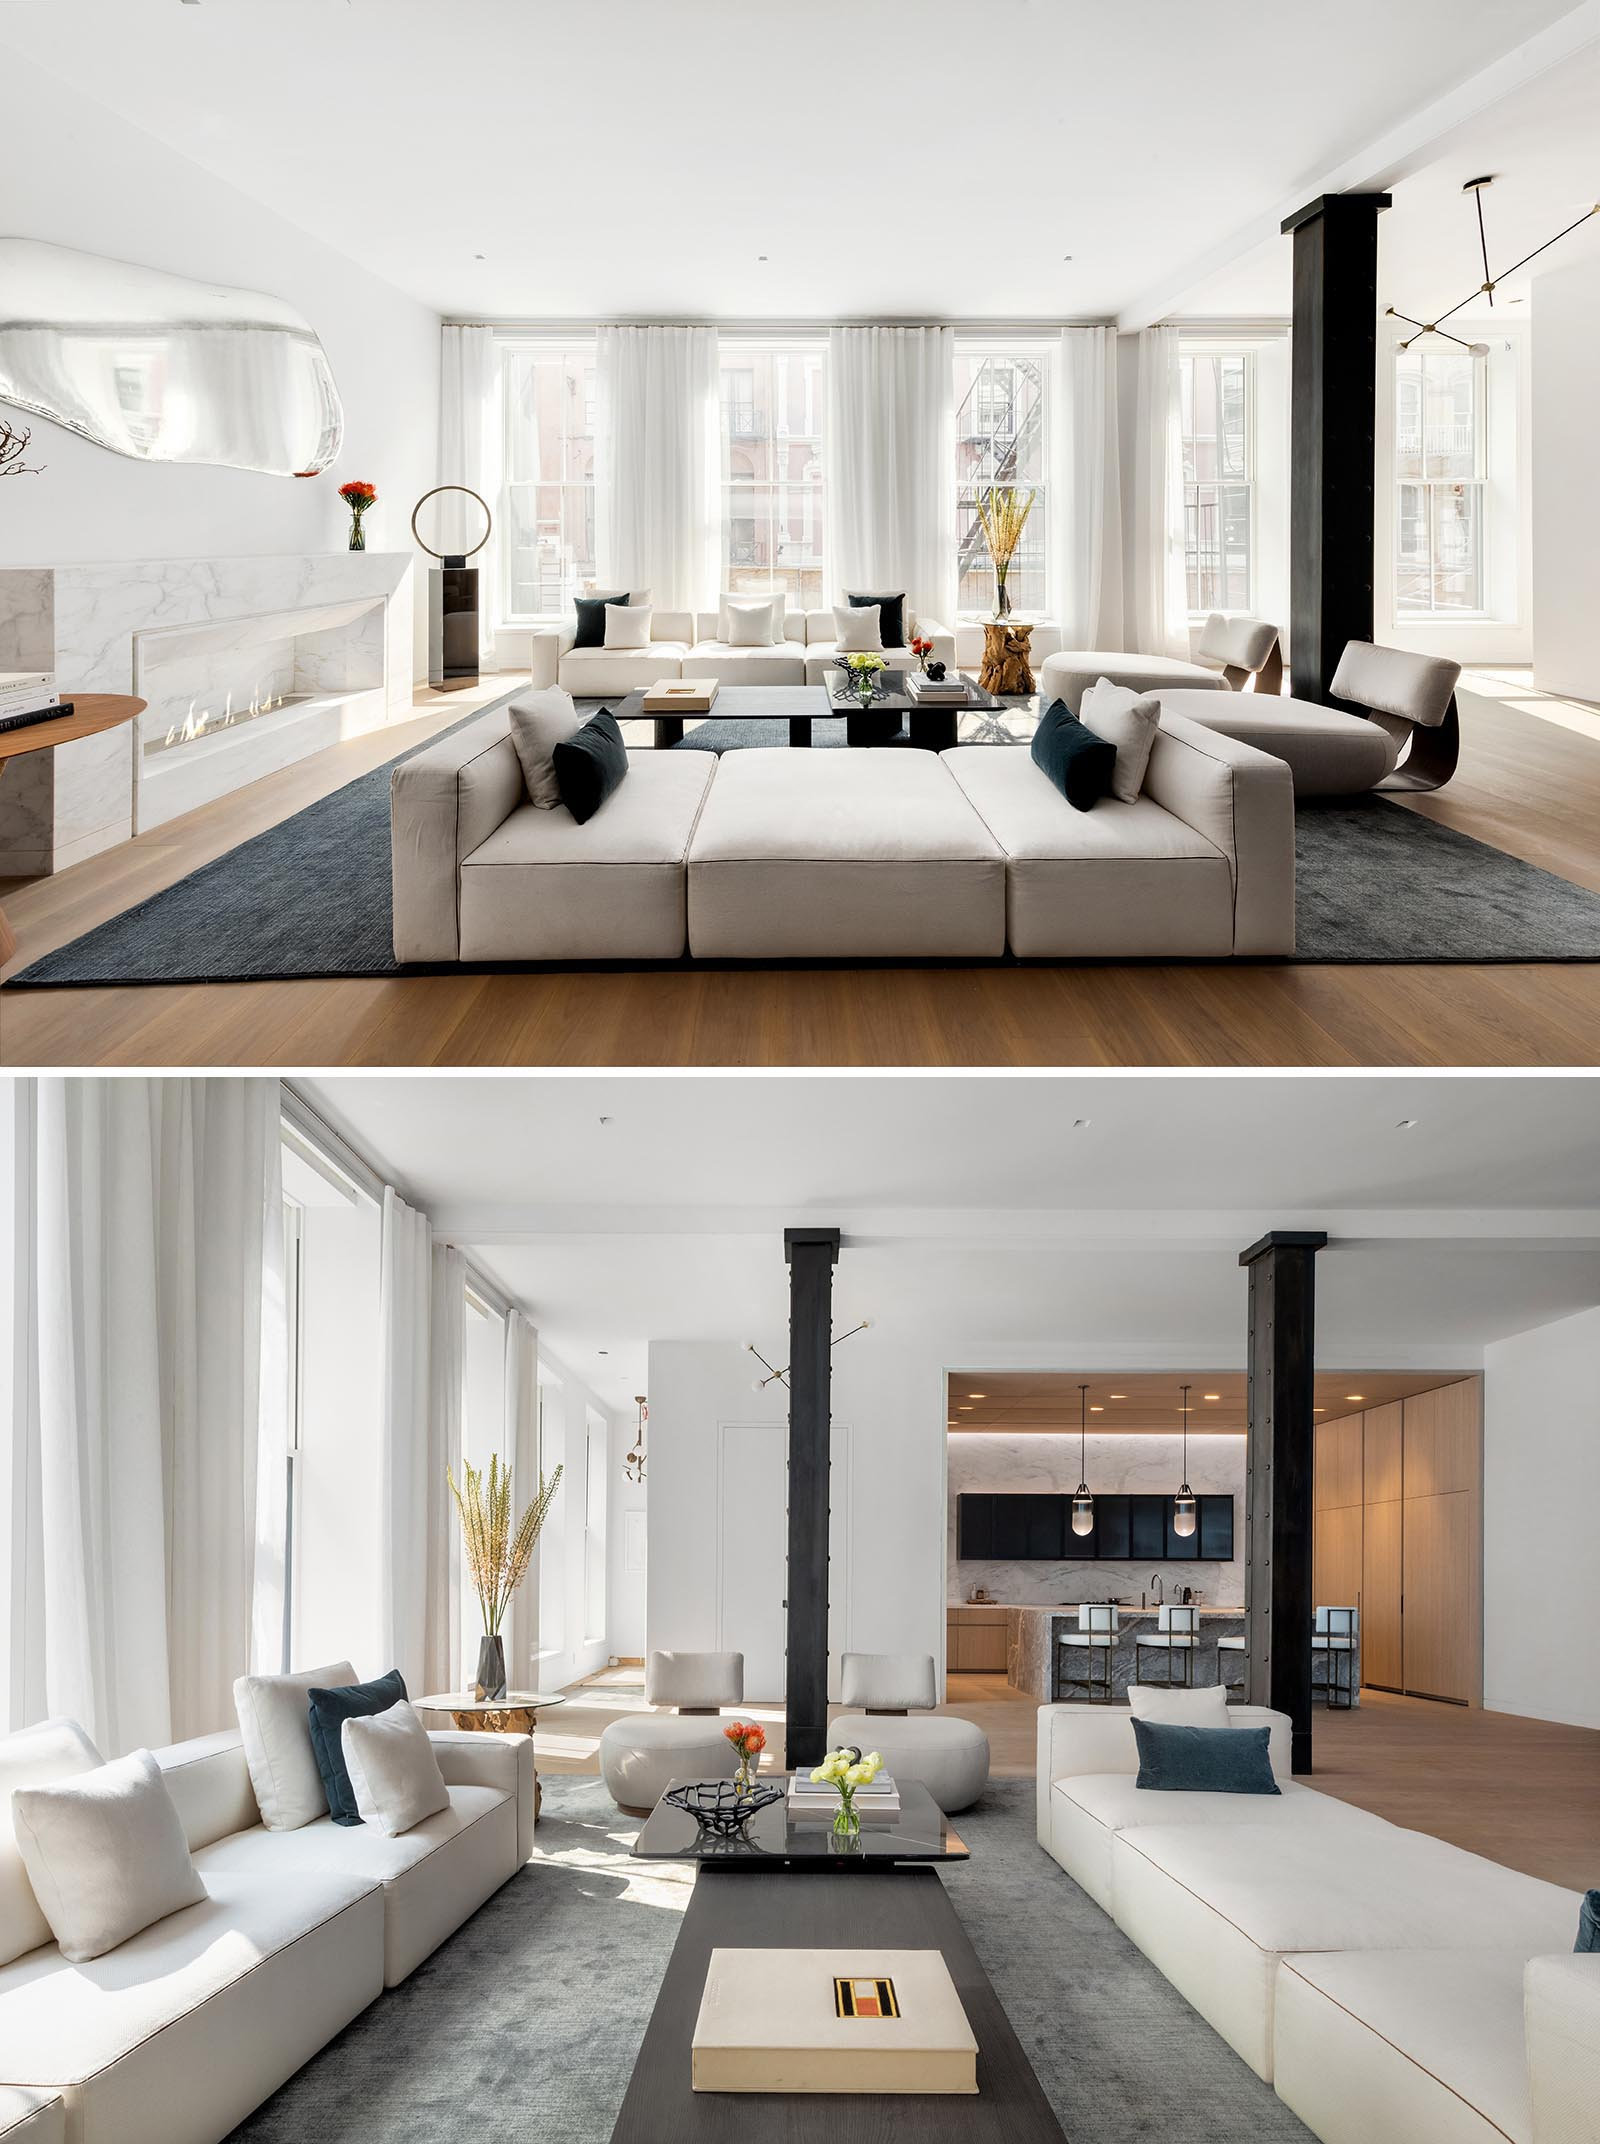 This modern living room includes 11-foot ceilings with black steel columns, six oversized, east-facing windows, and a large marble fireplace.